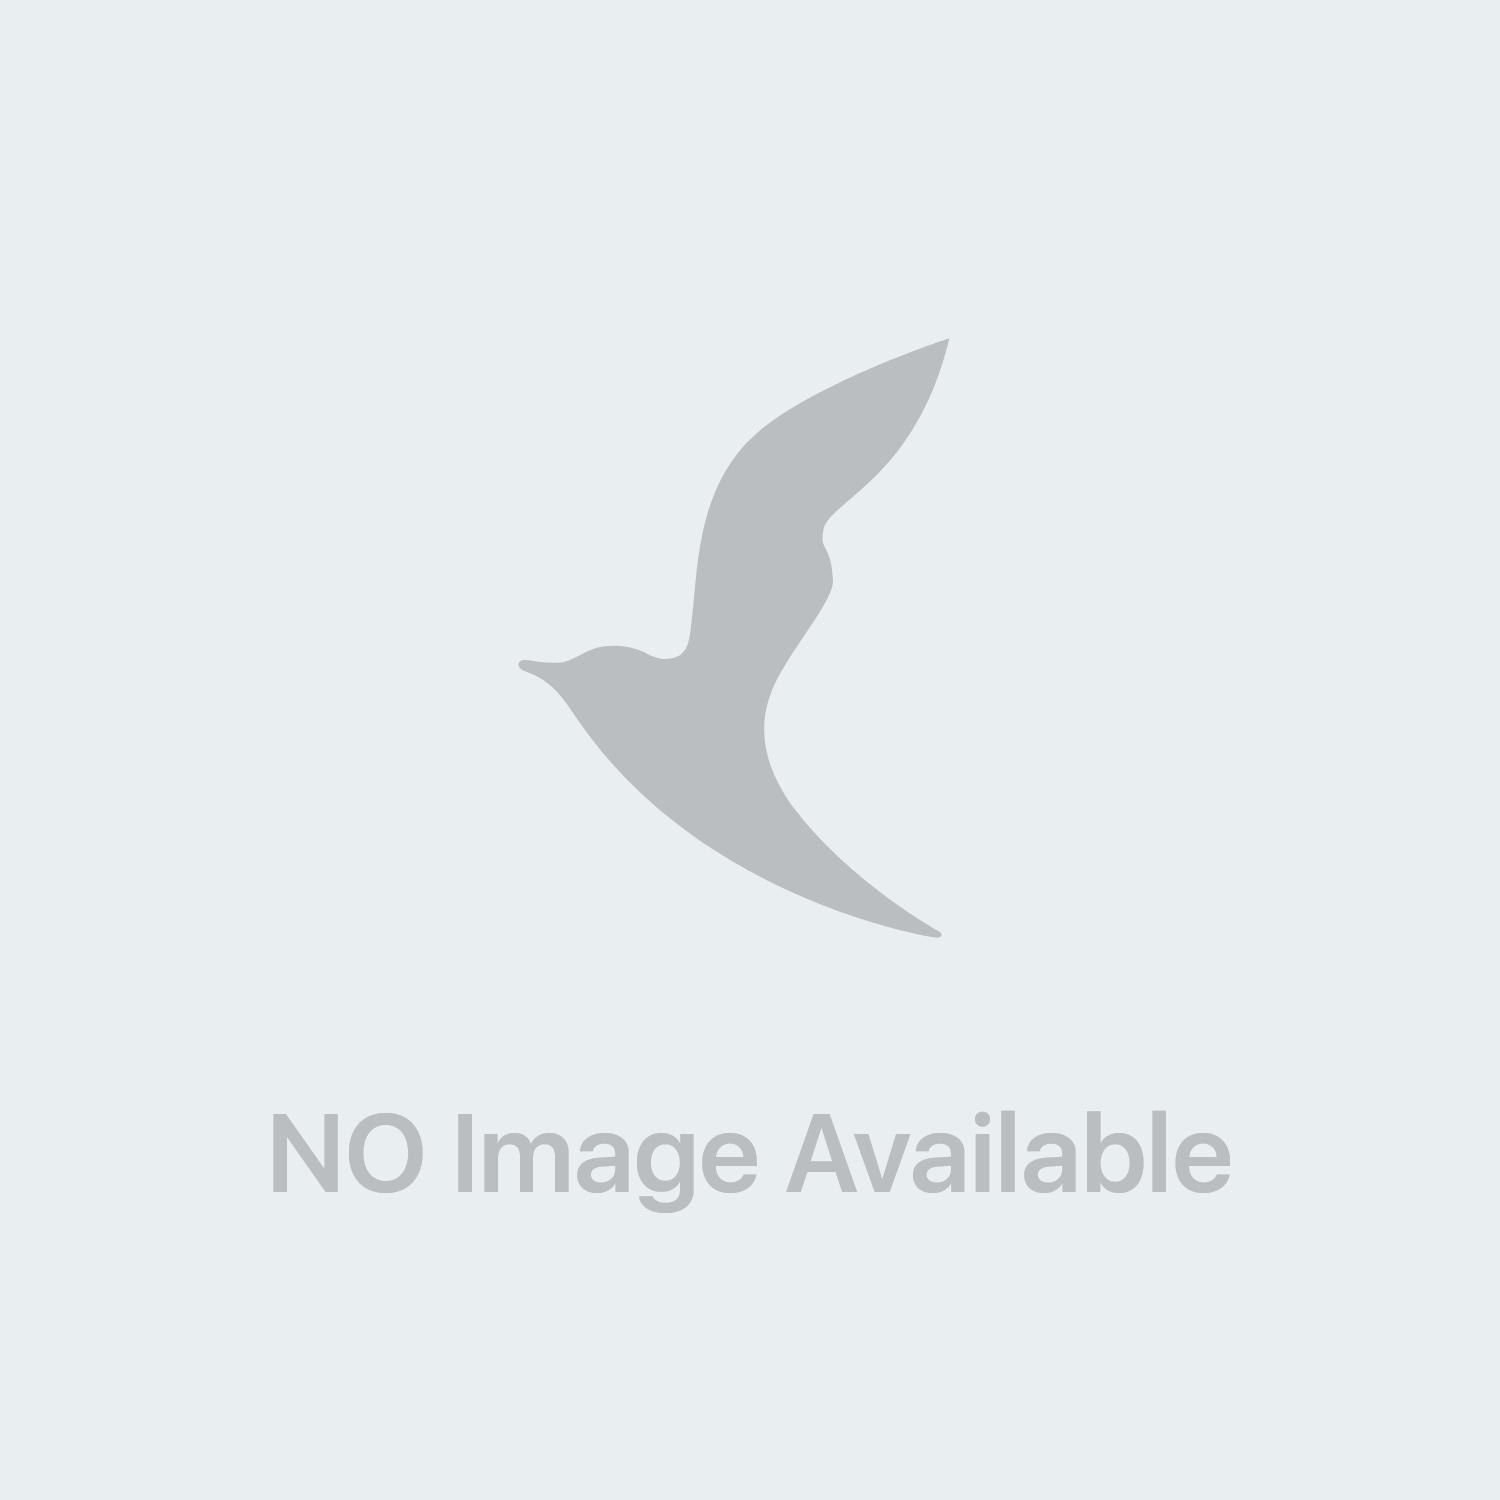 Specchiasol Pausa Night & Day Integratore Menopausa 80 Capsule